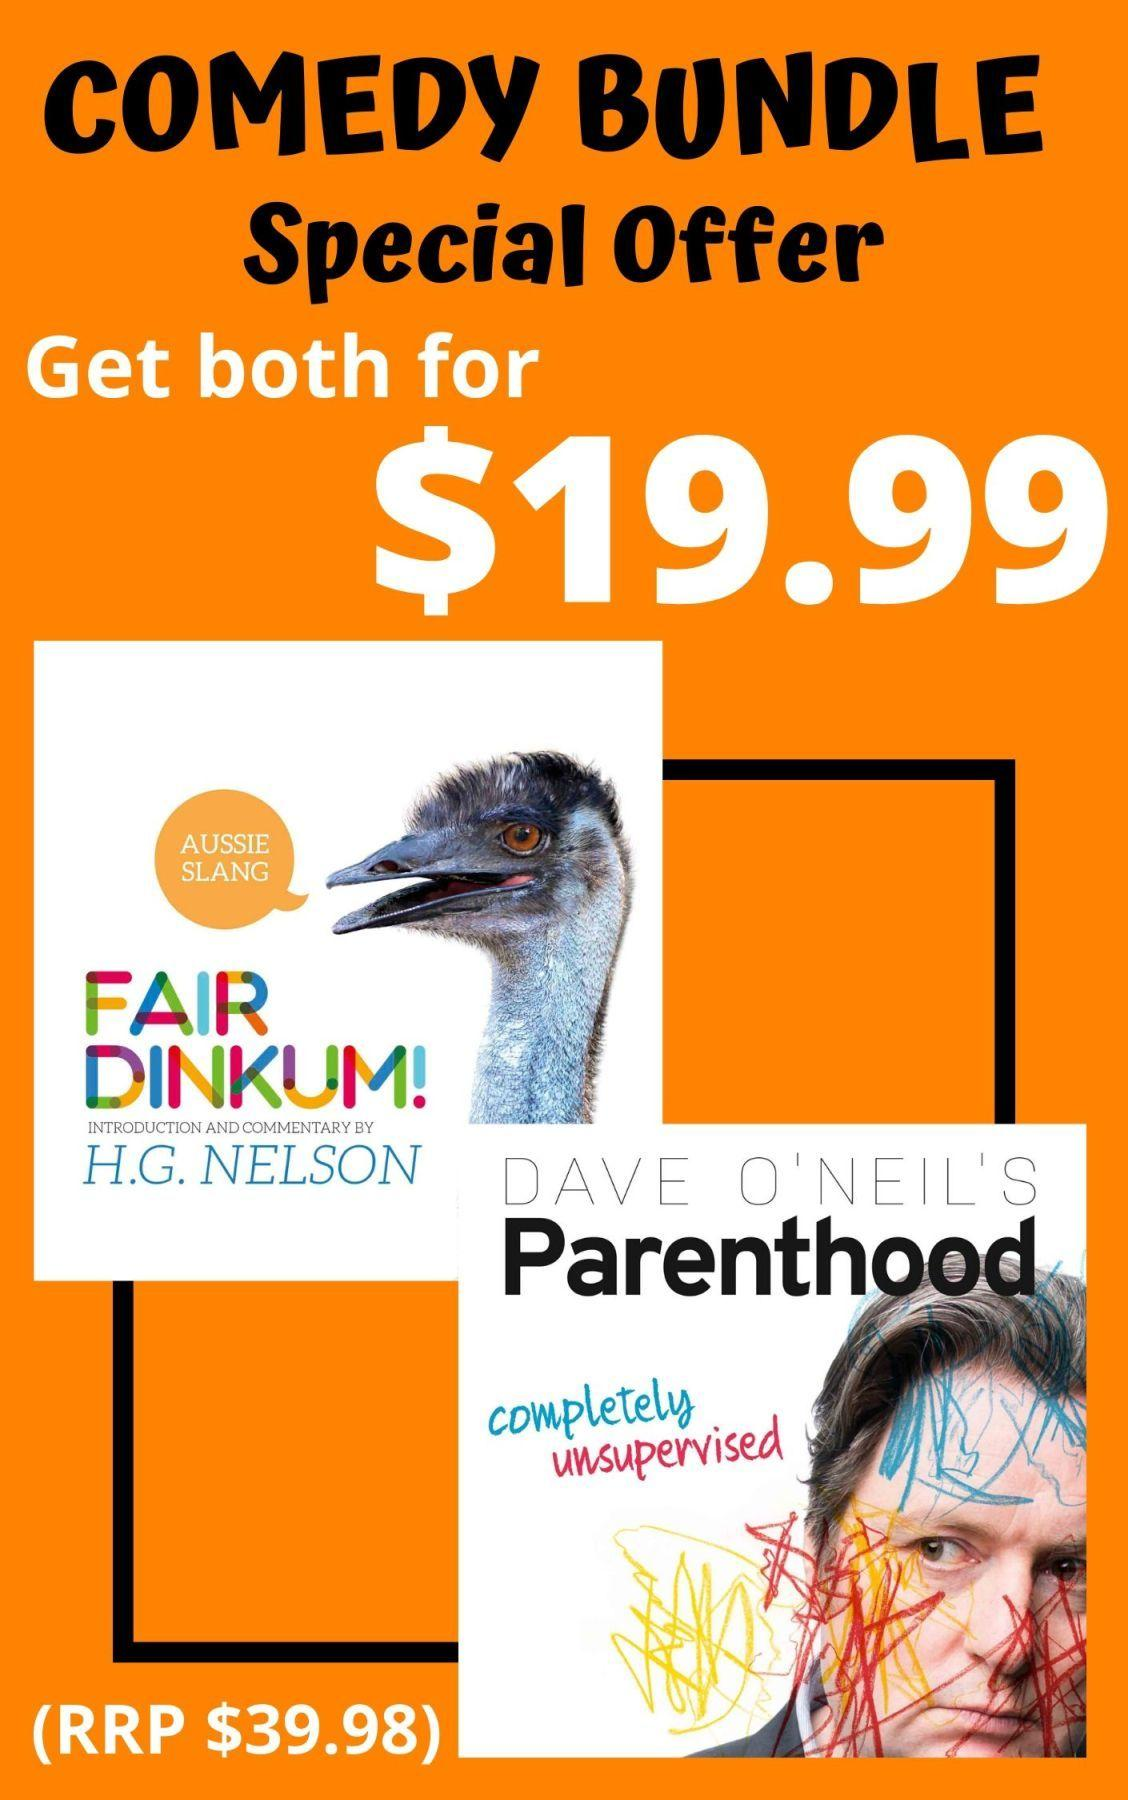 COMEDY GIFT BOOK BUNDLE - Fair Dinkum! Aussie Slang and Dave O'Neil's Parenthood special offer